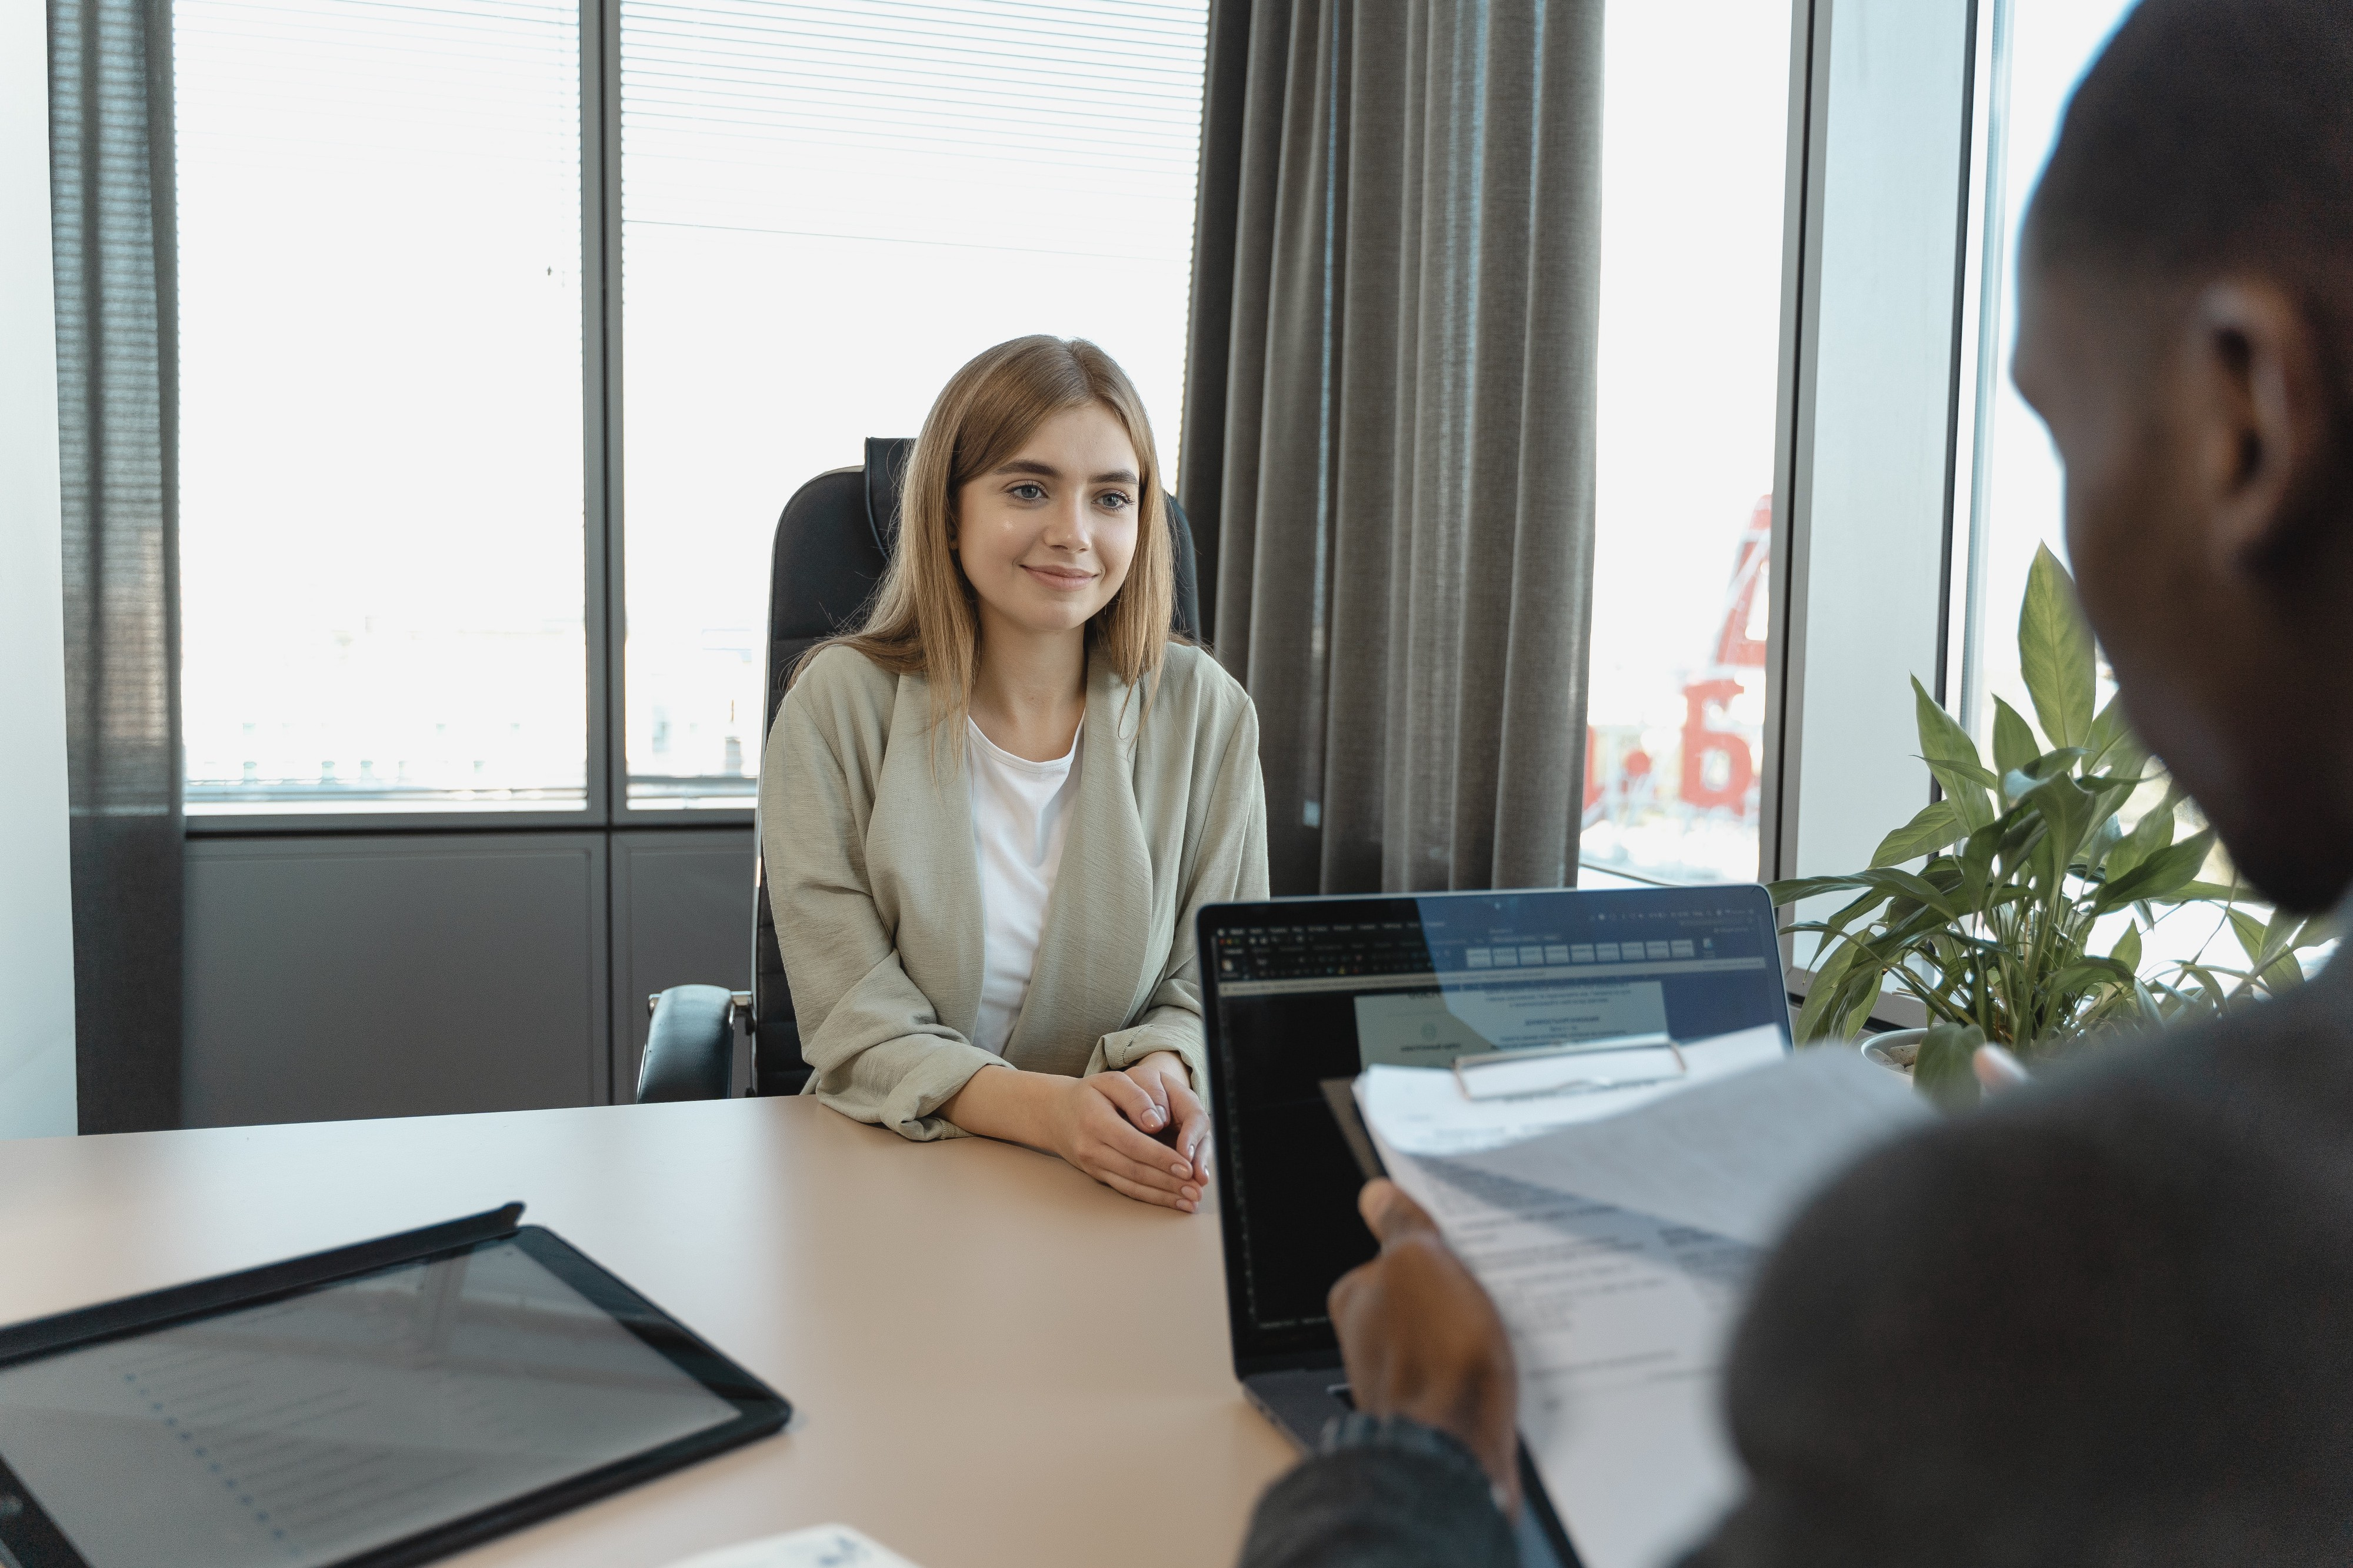 best emotional intelligence interview questions for managers and leaders